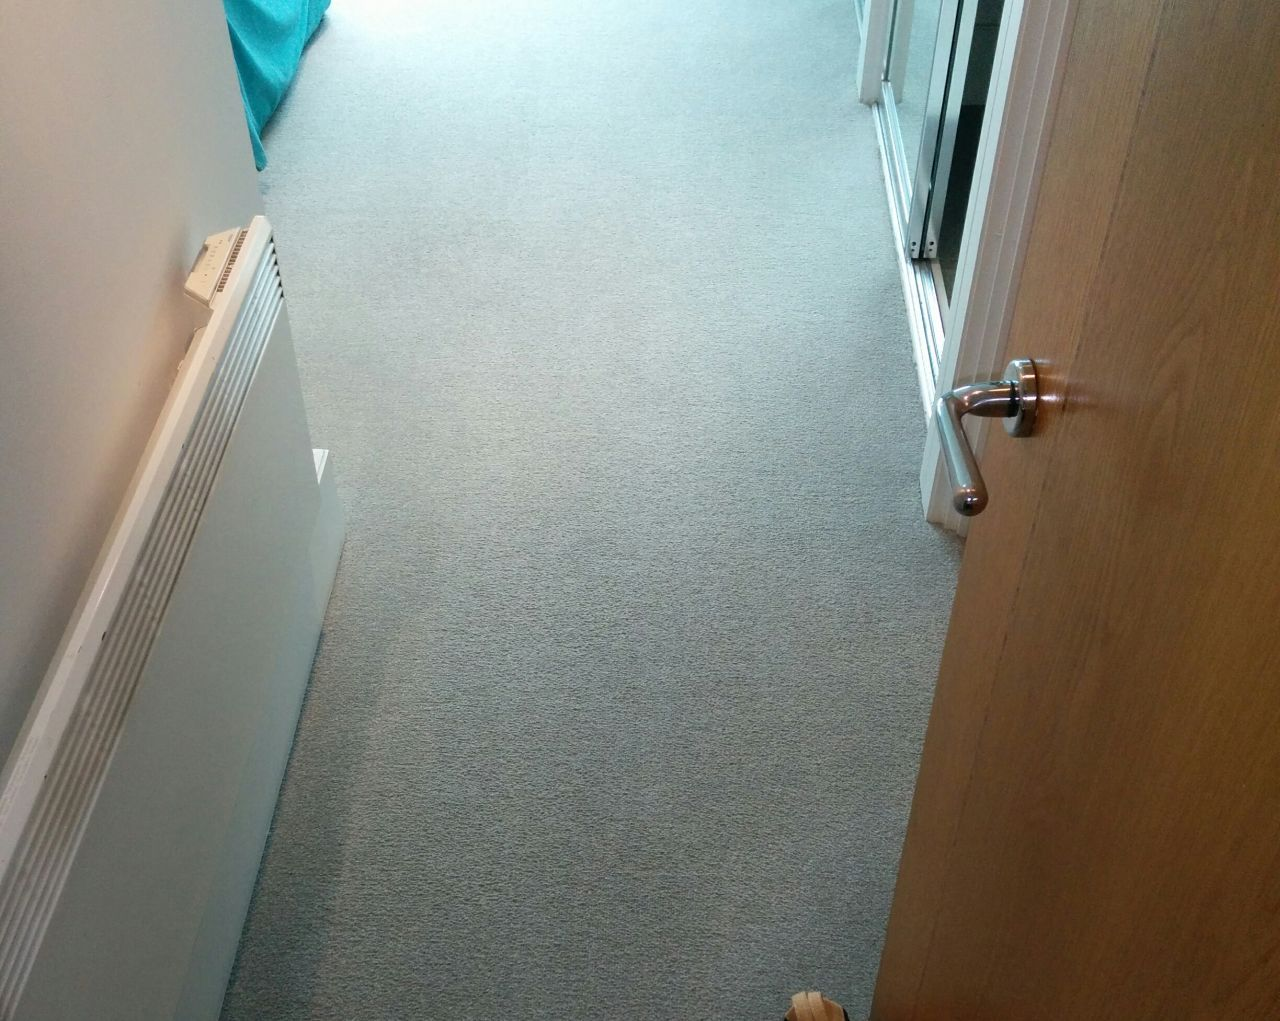 W14 cleaning floors Holland Park